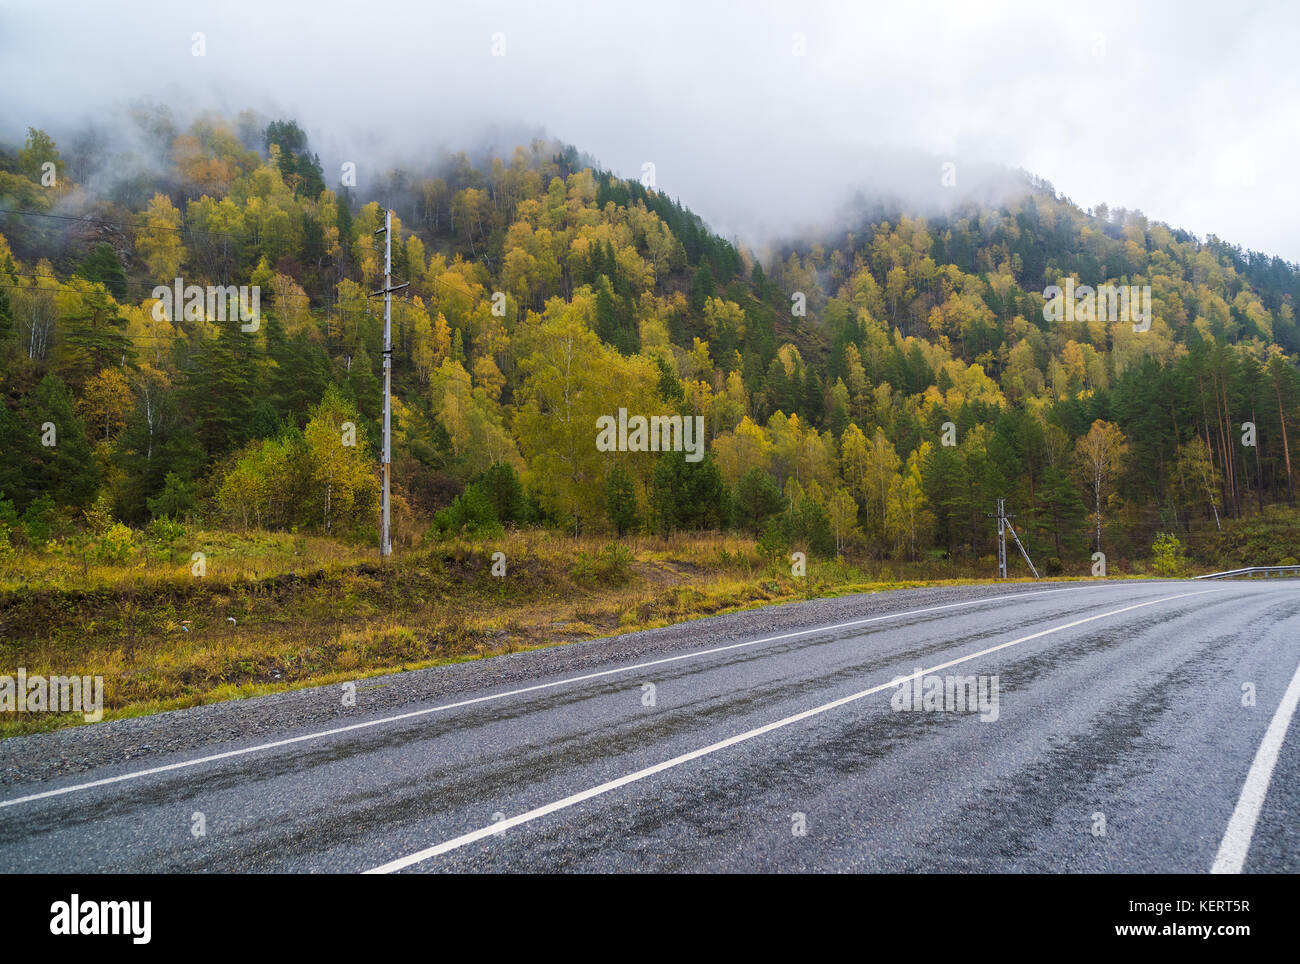 Federal highway M-52 Chuysky tract, asphalt road with markings among the autumn trees. - Stock Image